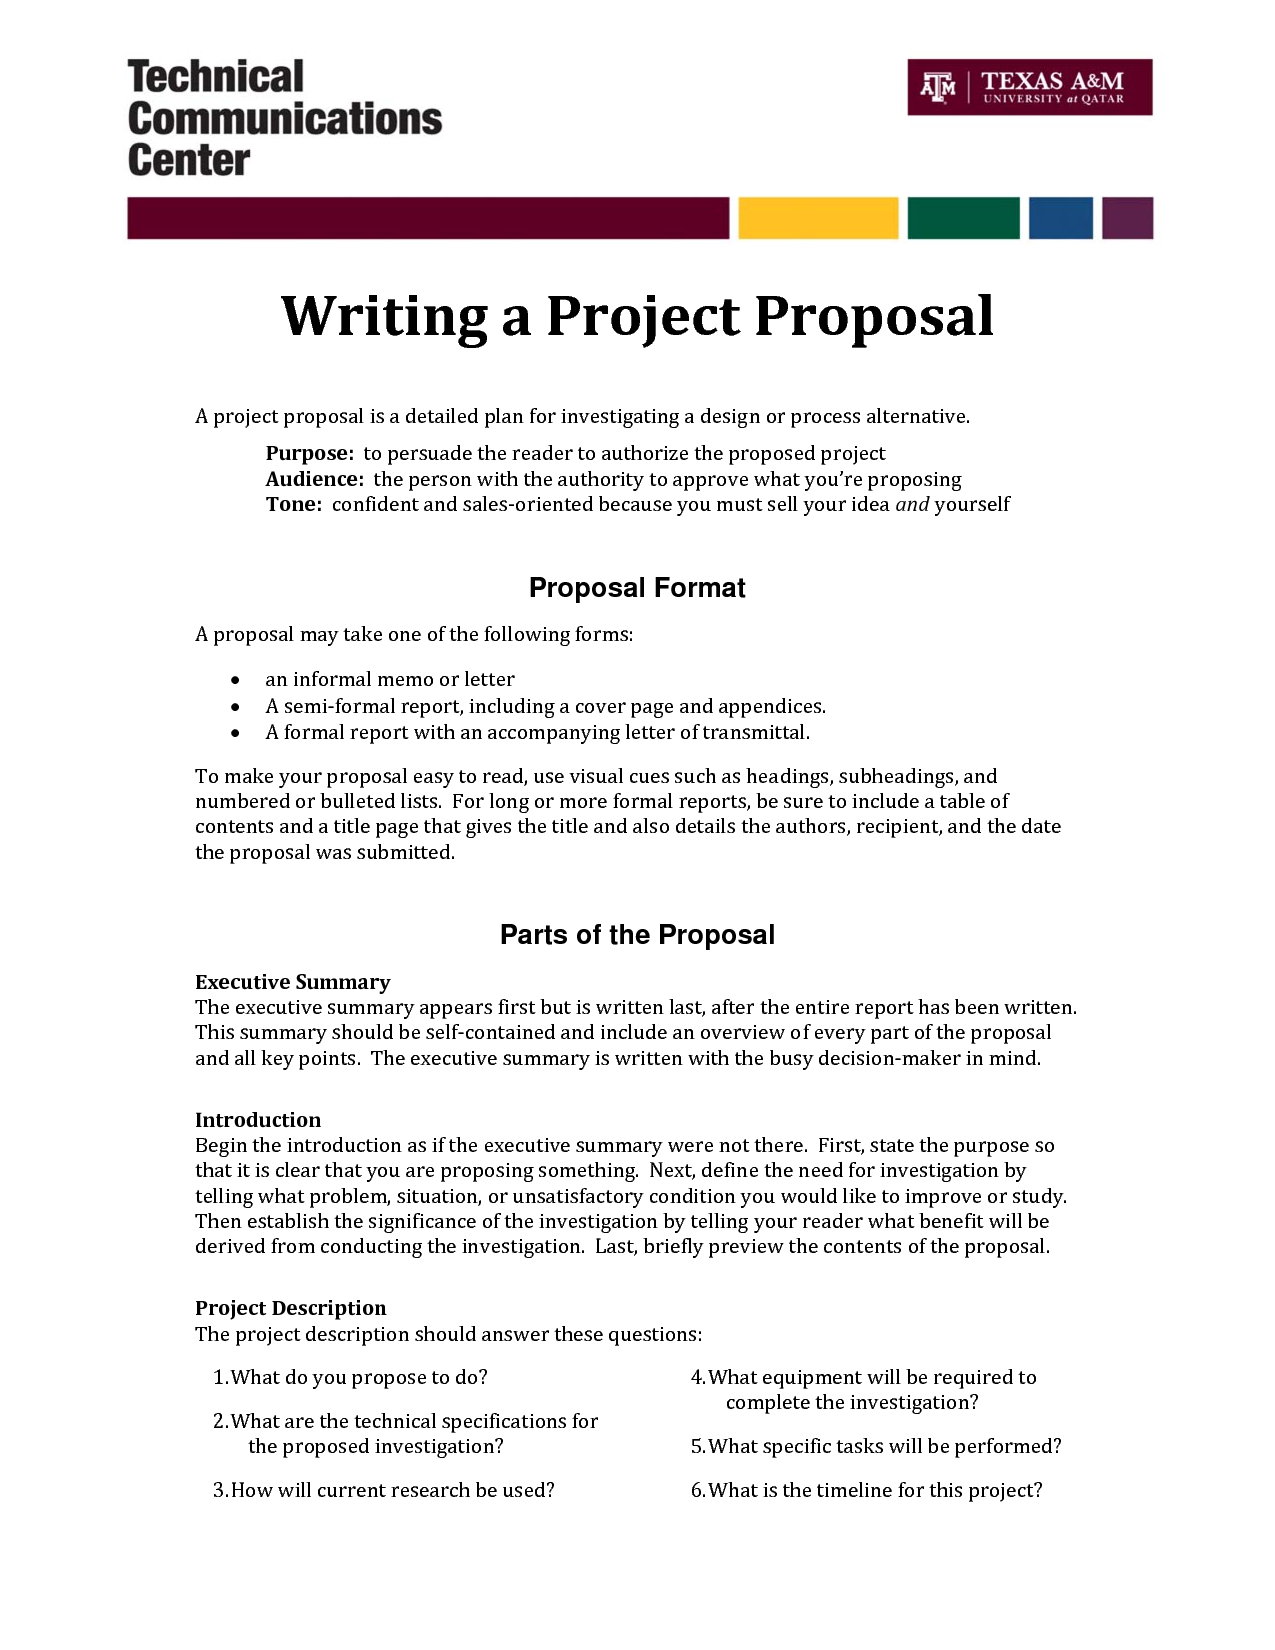 Informal Proposal Letter Example  Writing A Project Proposal A With Written Proposal Template